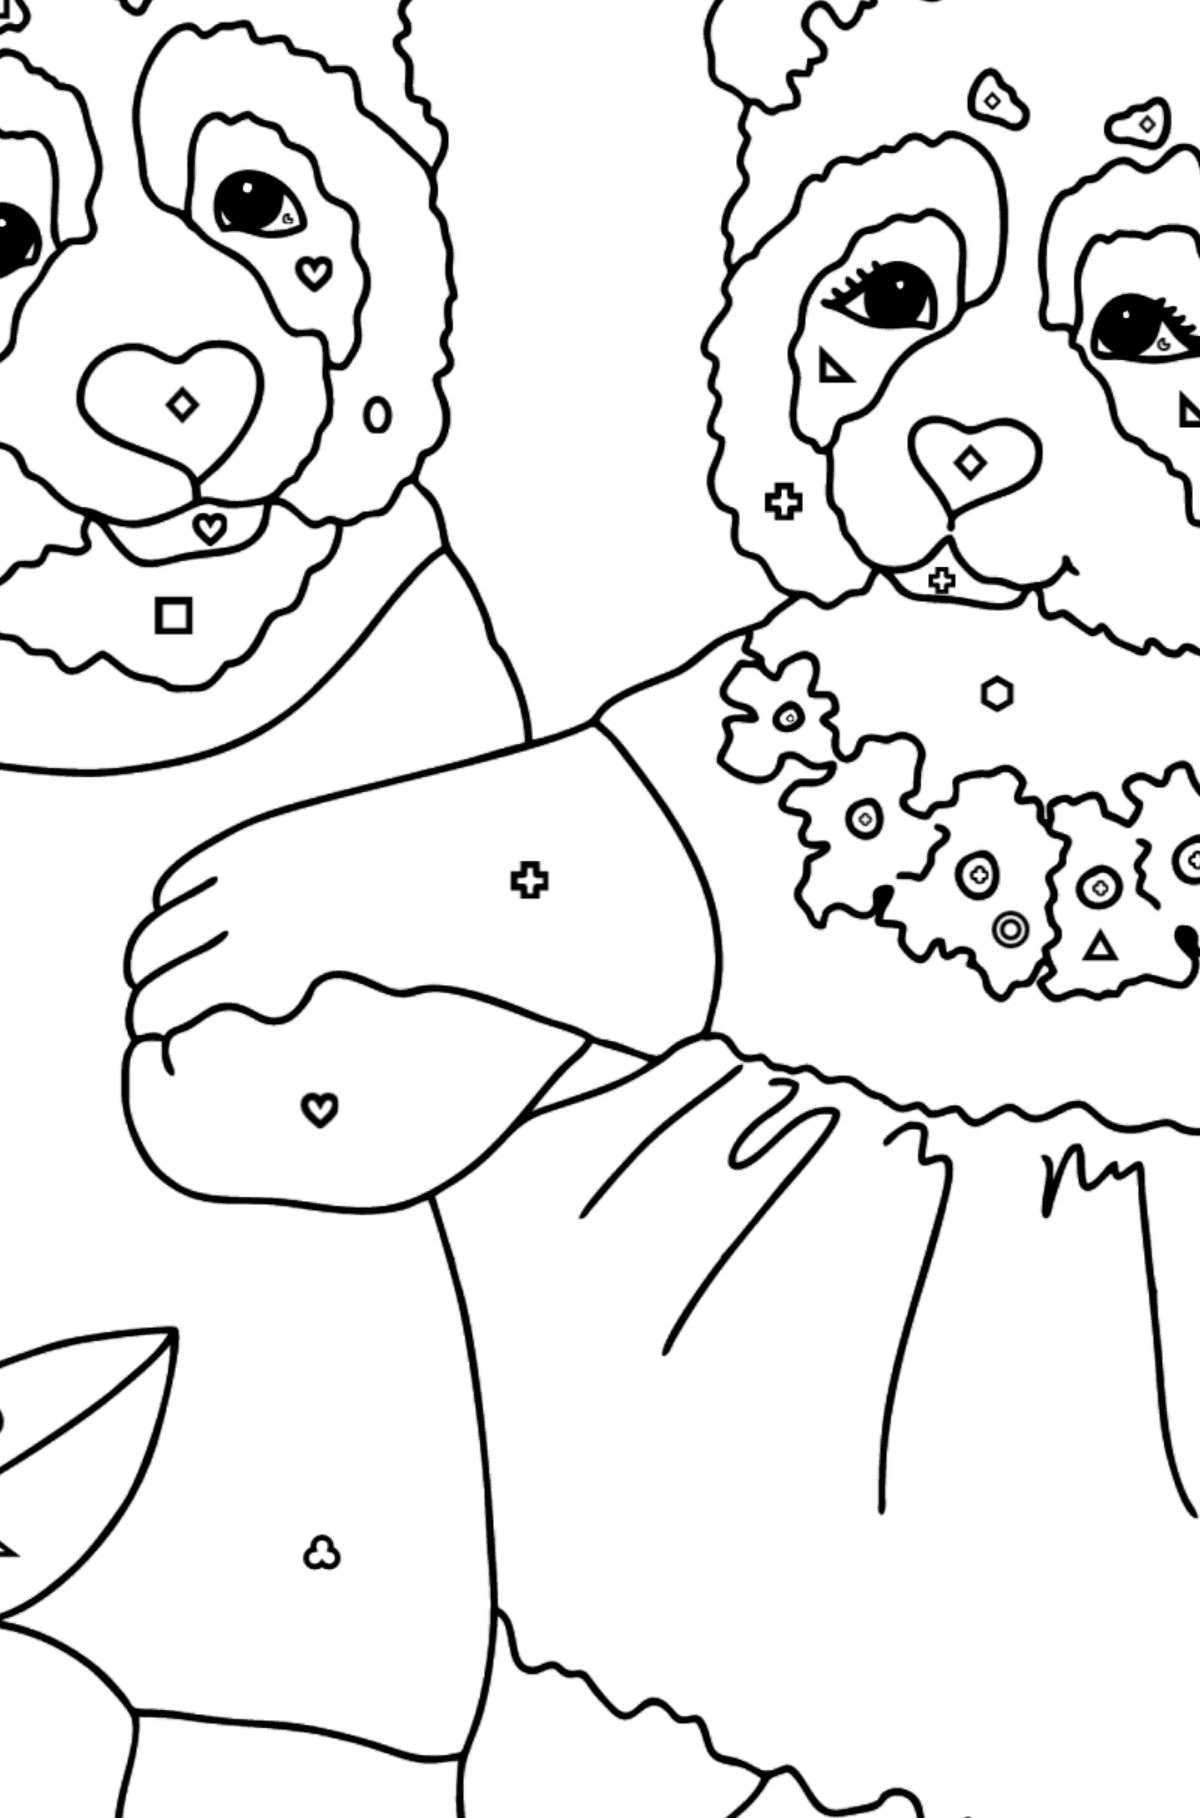 Coloring Page - Pandas are Having a Rest - Coloring by Geometric Shapes for Kids